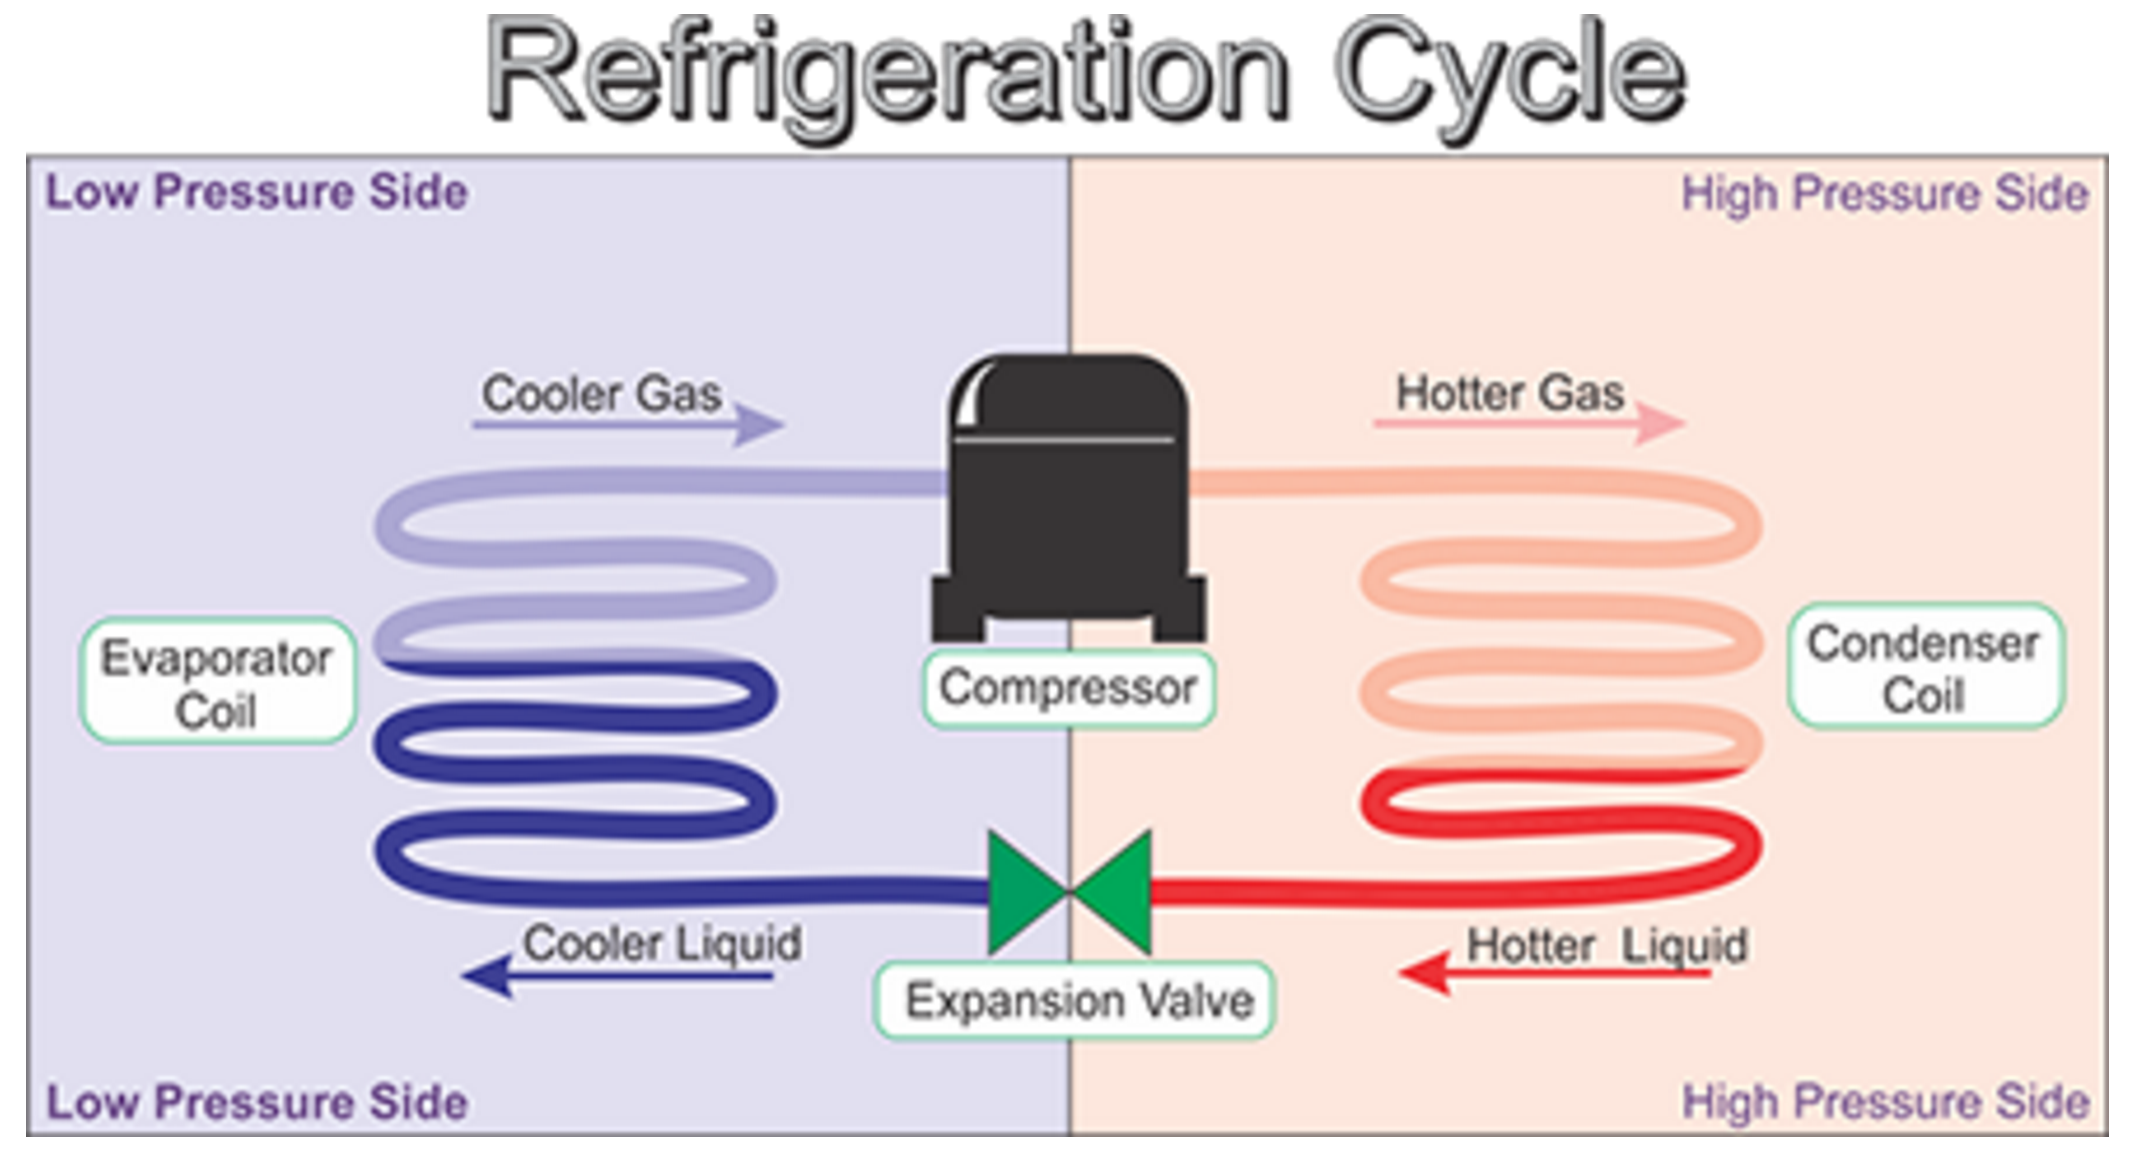 Diagram of Refrigeration Cycle